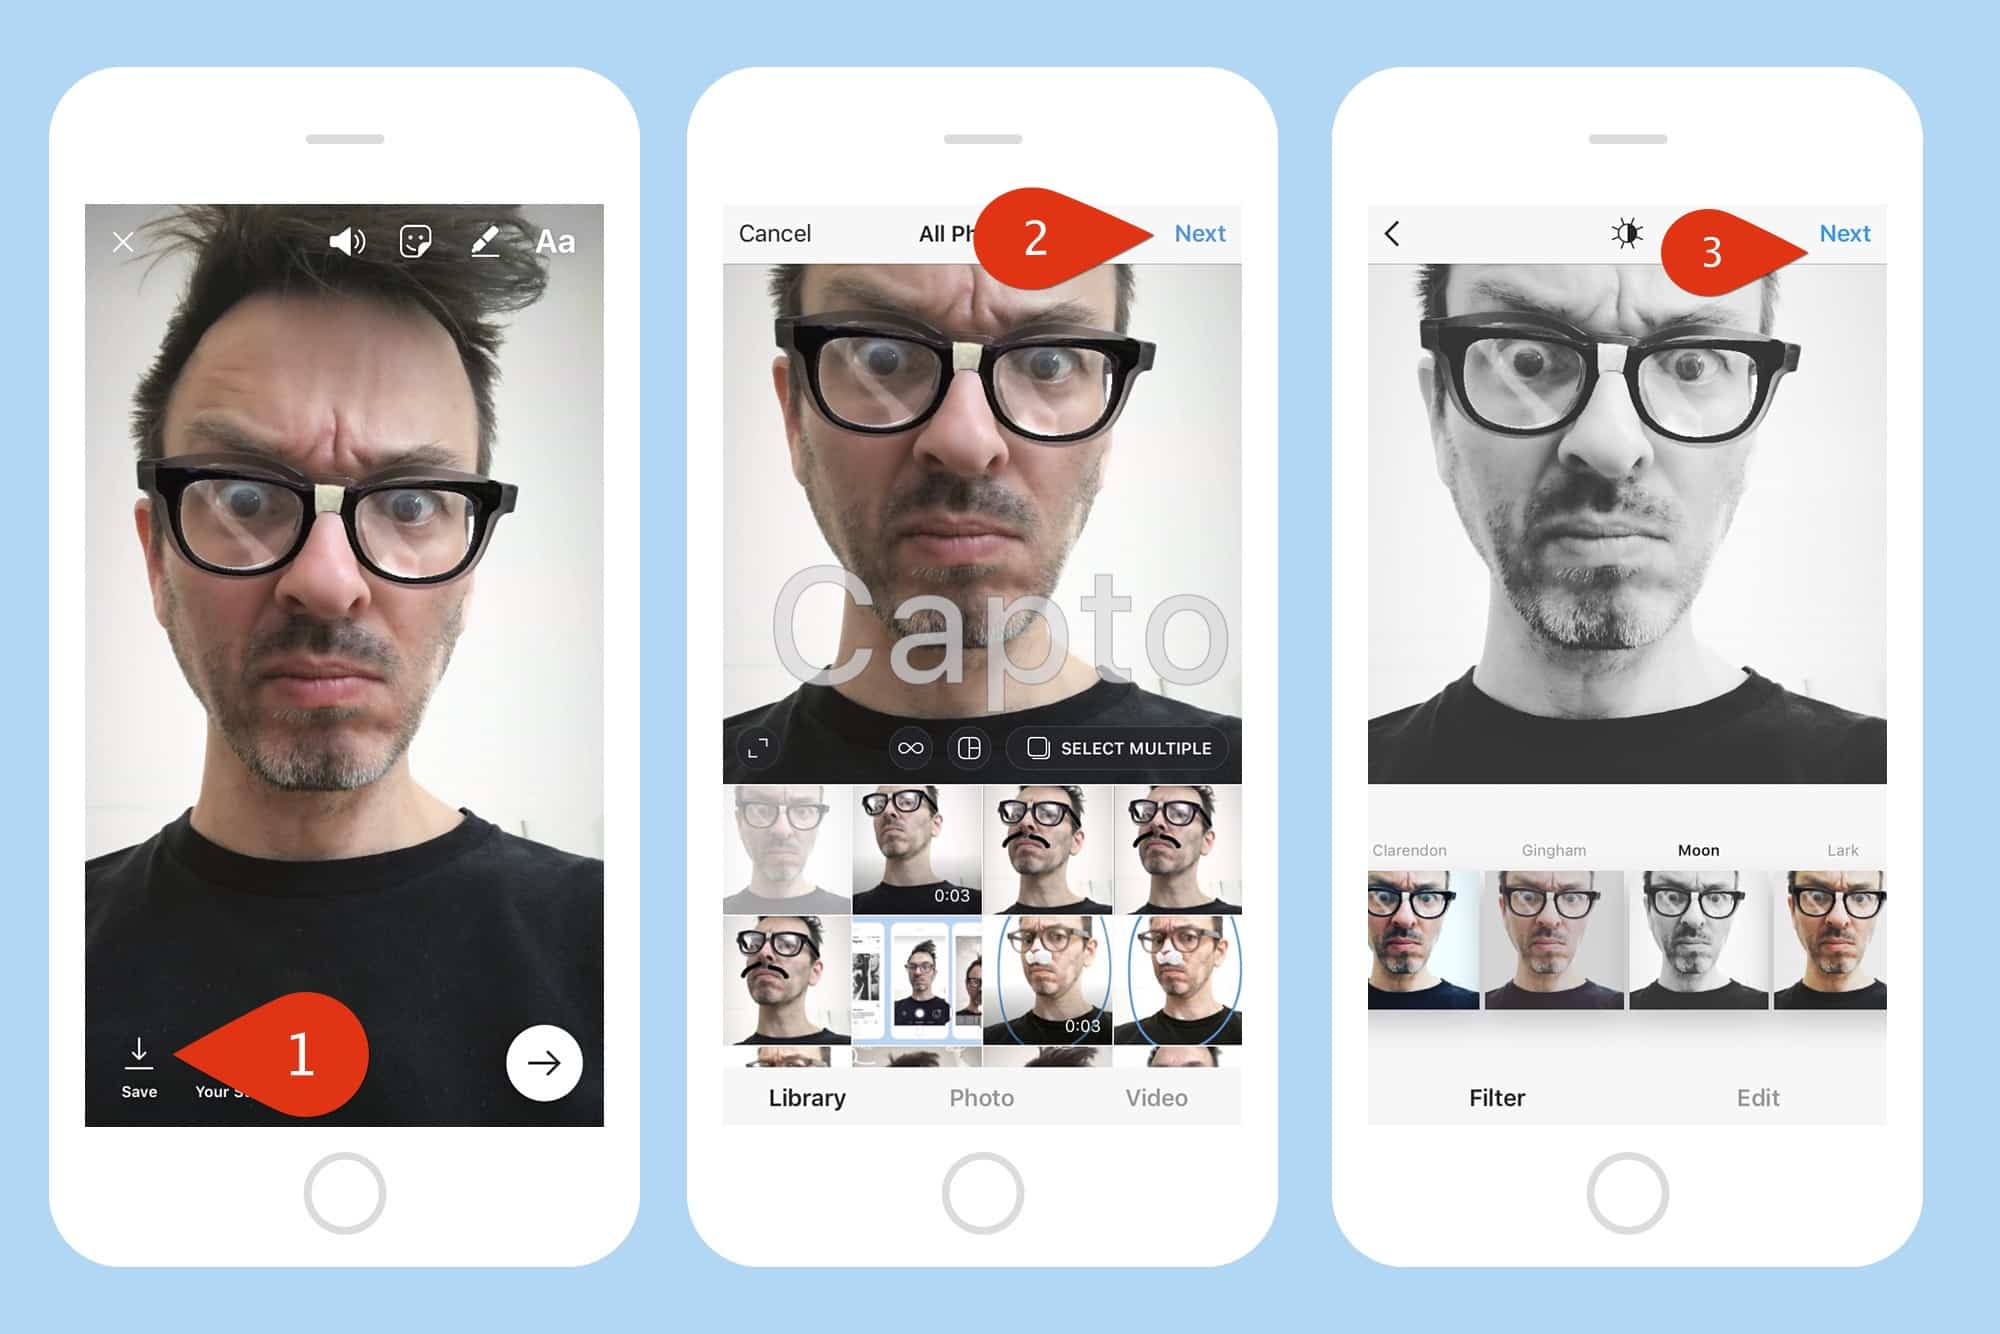 How to use Instagram Face Filters, and post them to your